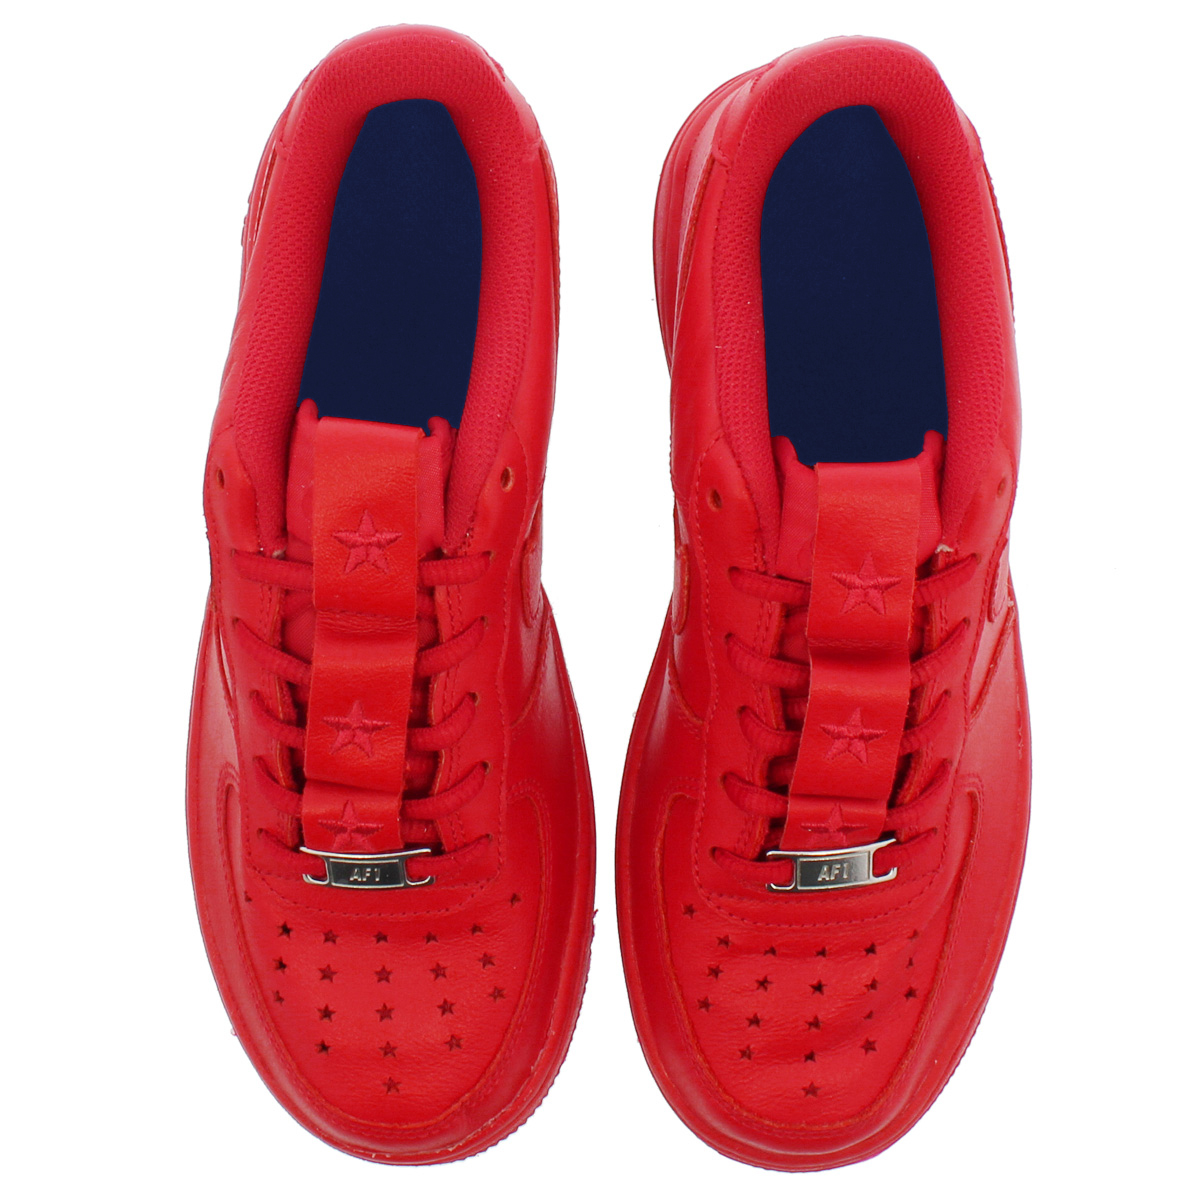 NIKE AIR FORCE 1 LOW Nike air force 1 low UNIVARSITY RED ar0688 600